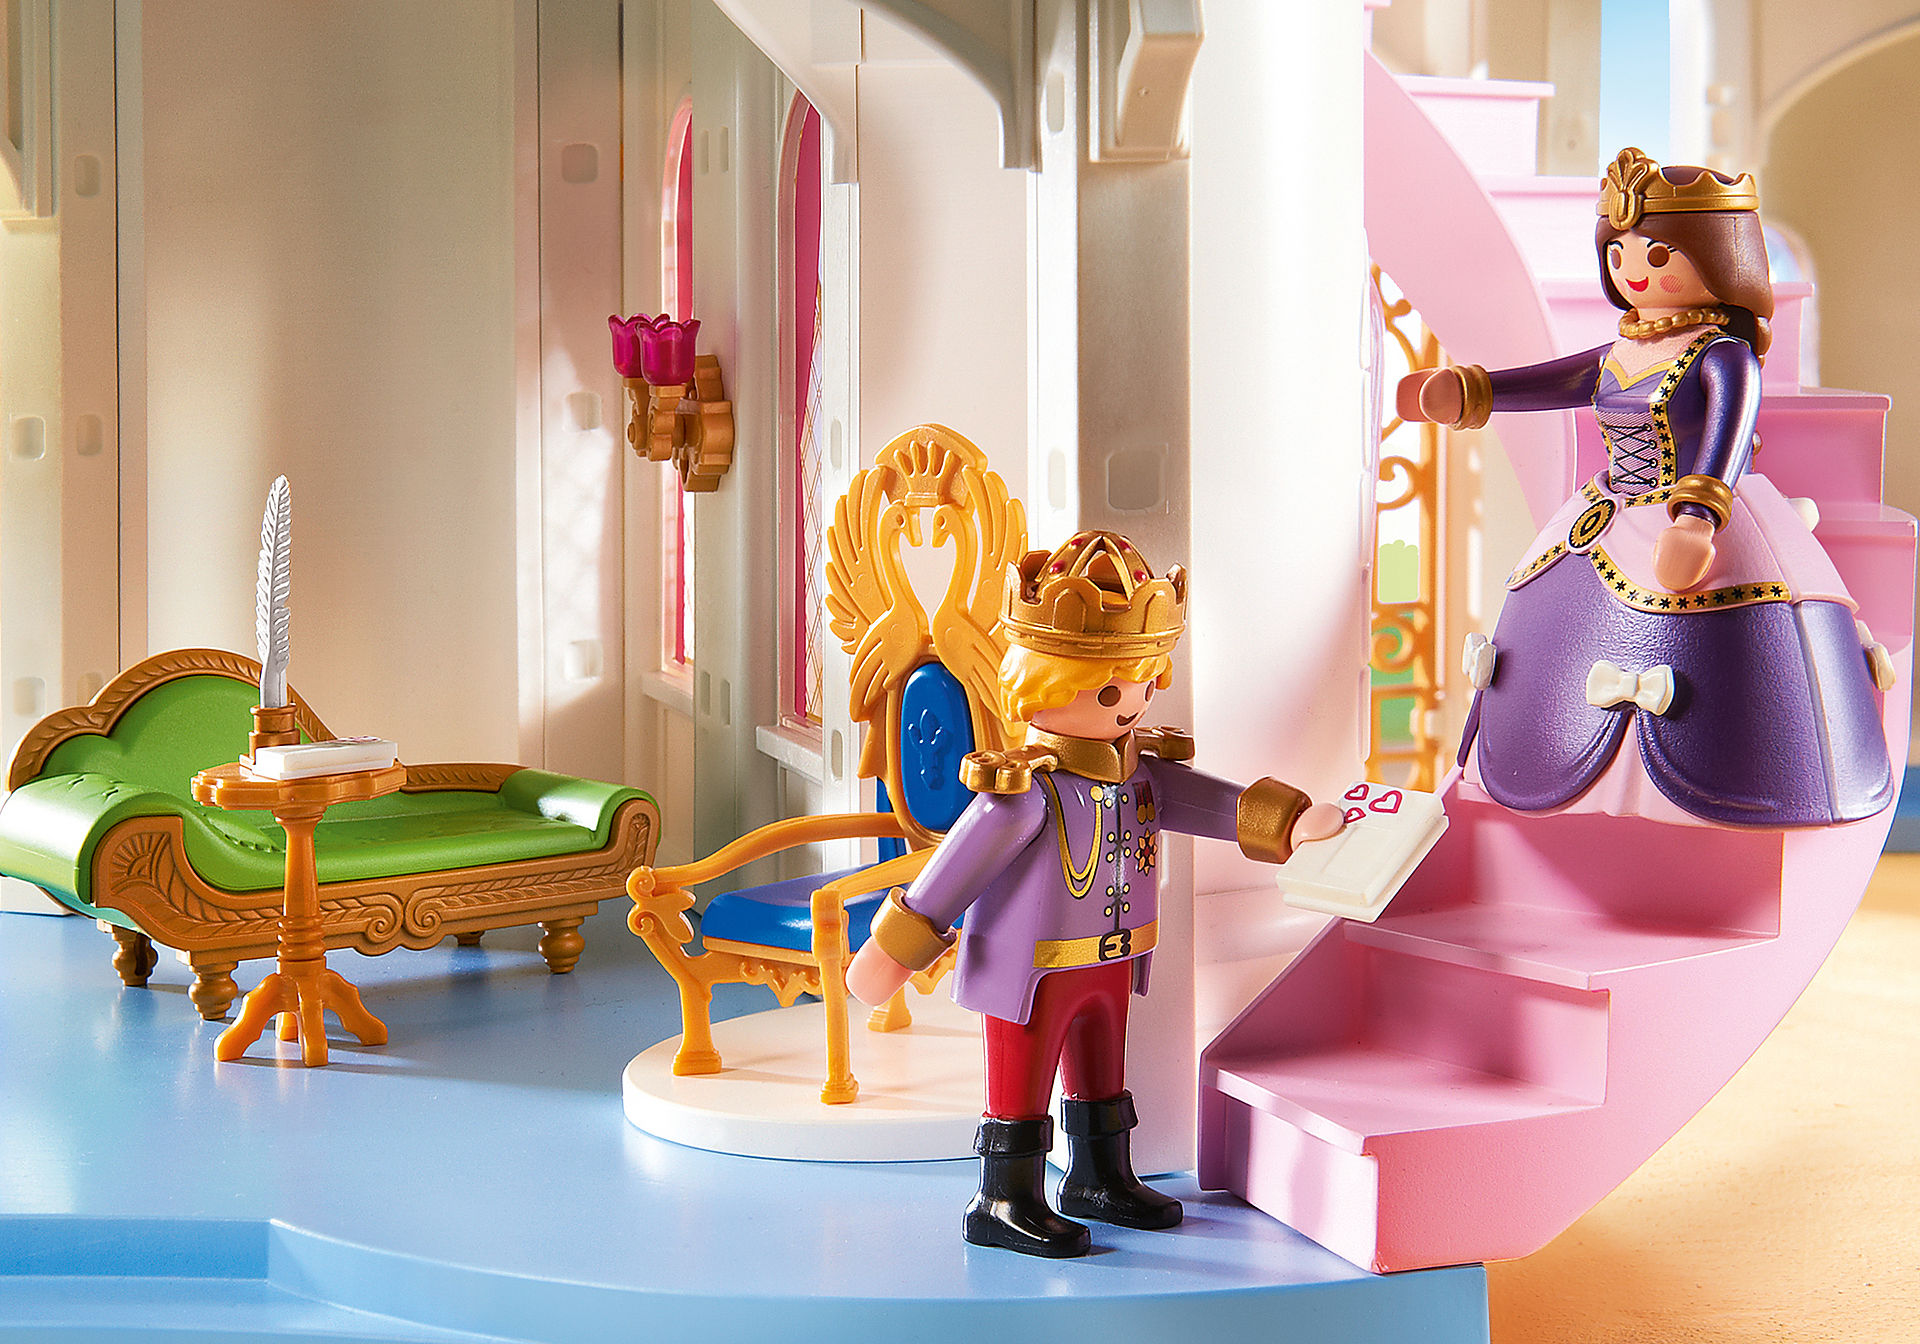 http://media.playmobil.com/i/playmobil/6848_product_extra1/Grand Princess Castle